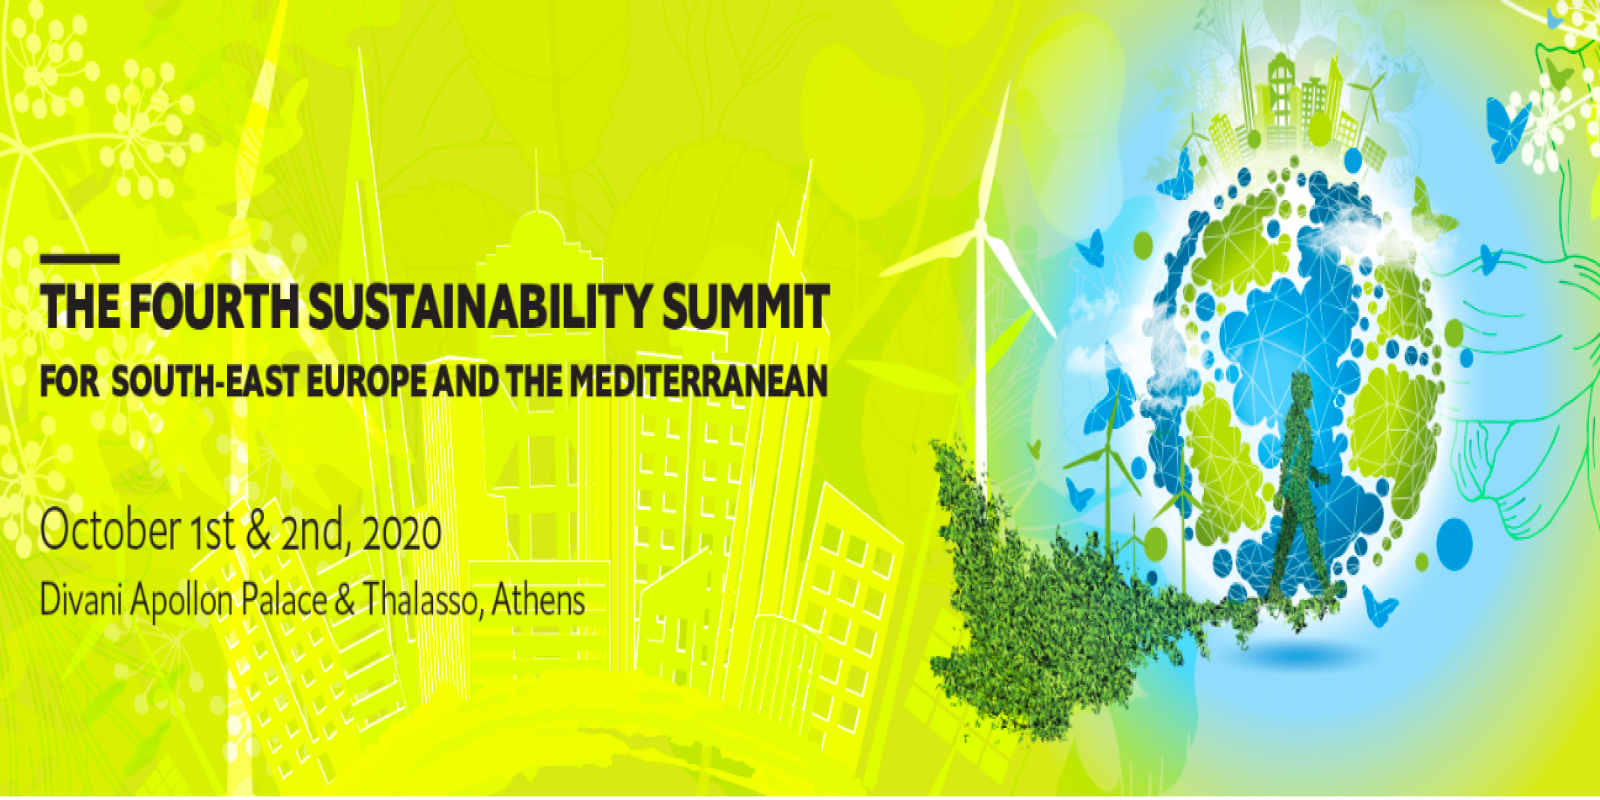 Fourth Sustainability Summit by UN SDSN Greece and the Economist